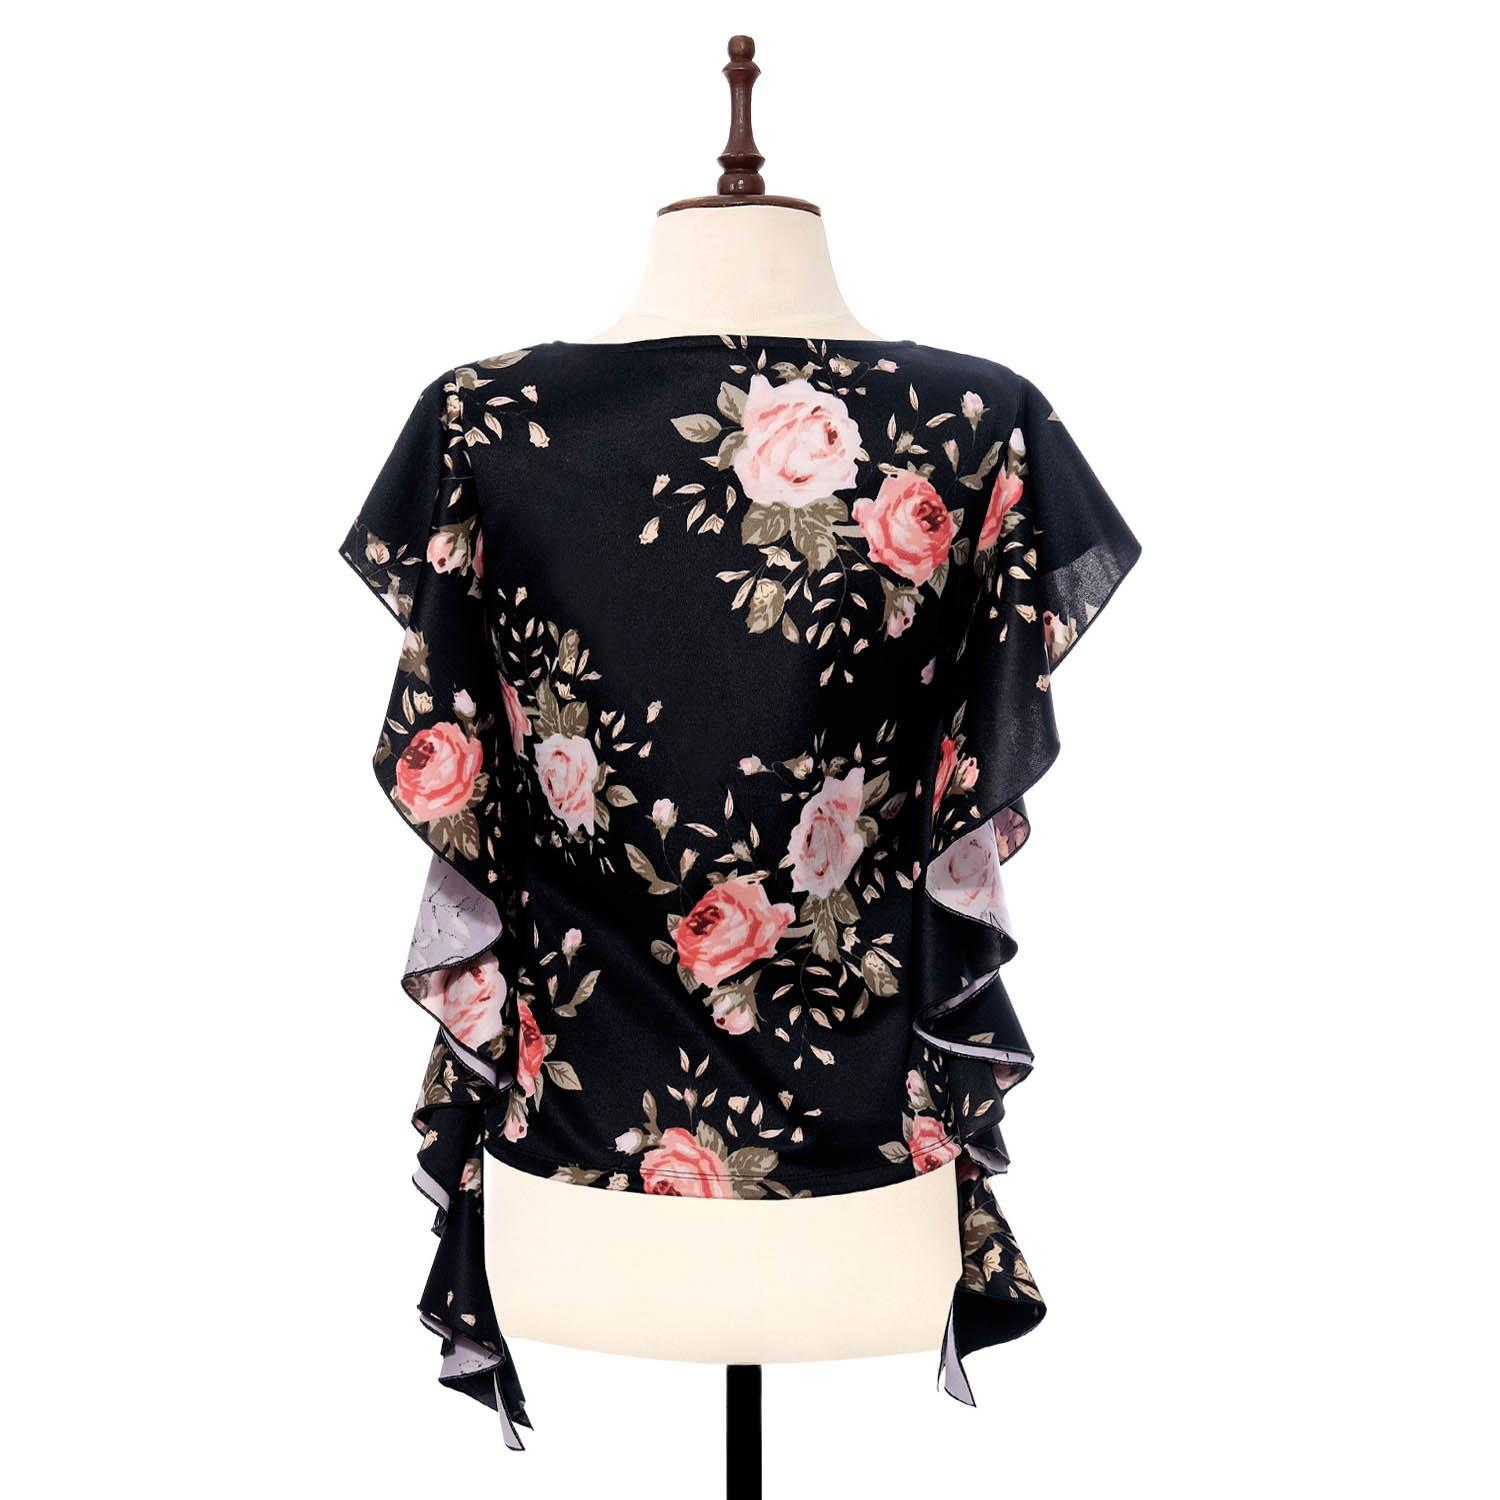 BLACK SHEEP Floral Top w/ Cascading Sleeves in Black